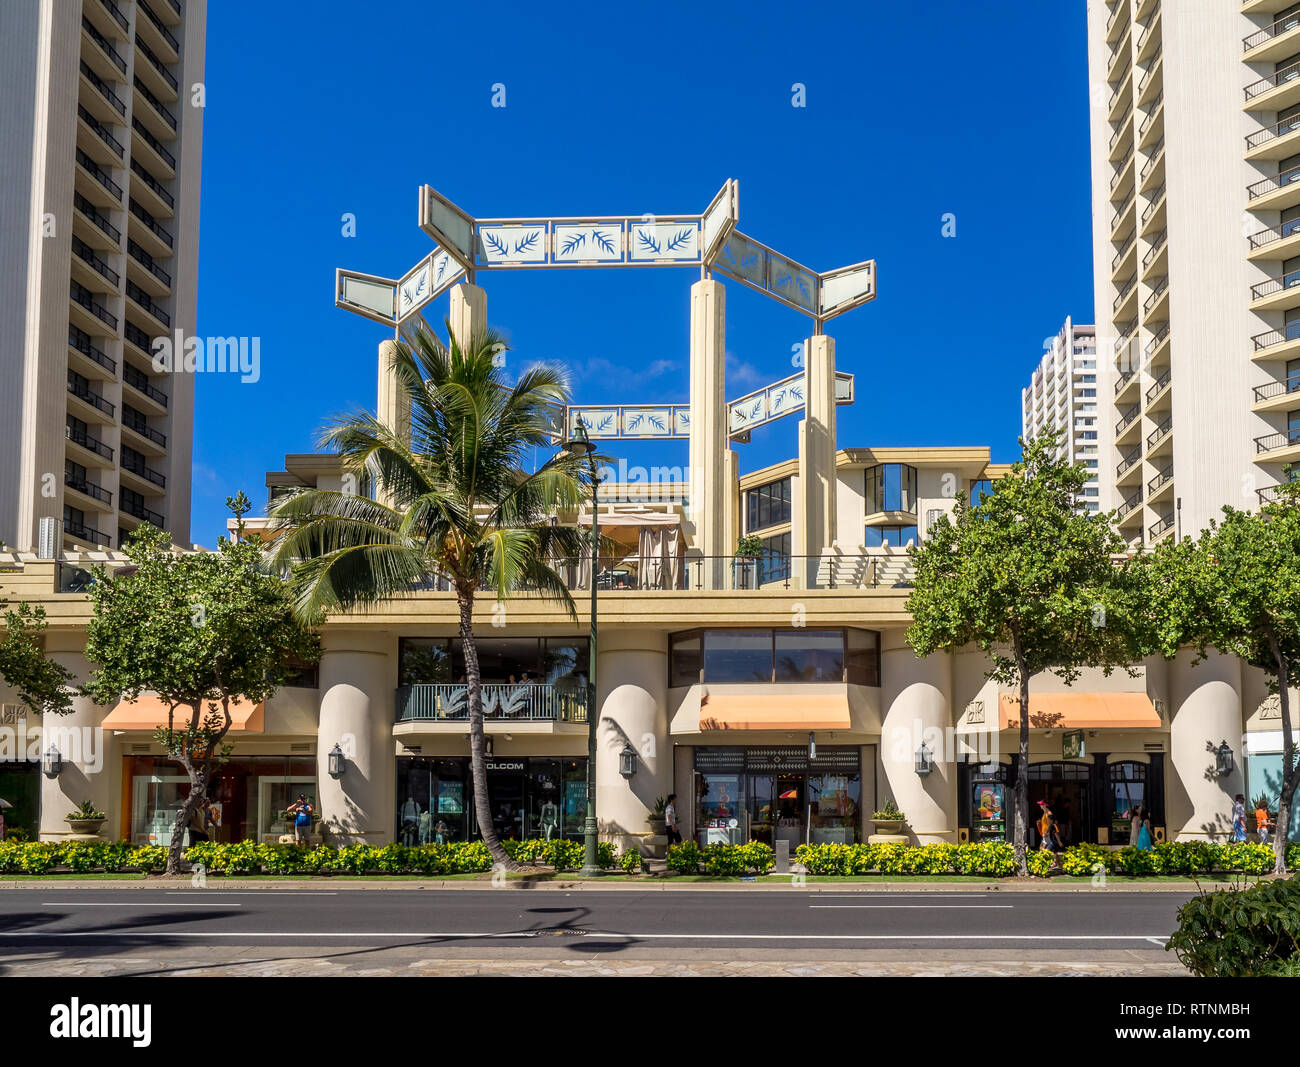 Retail outlets on Kalakaua Avenue on August 5, 2016 in Waikiki, Hawaii. Kalakaua Avenue is the favorite luxury shopping strip for tourists visiting Ha - Stock Image